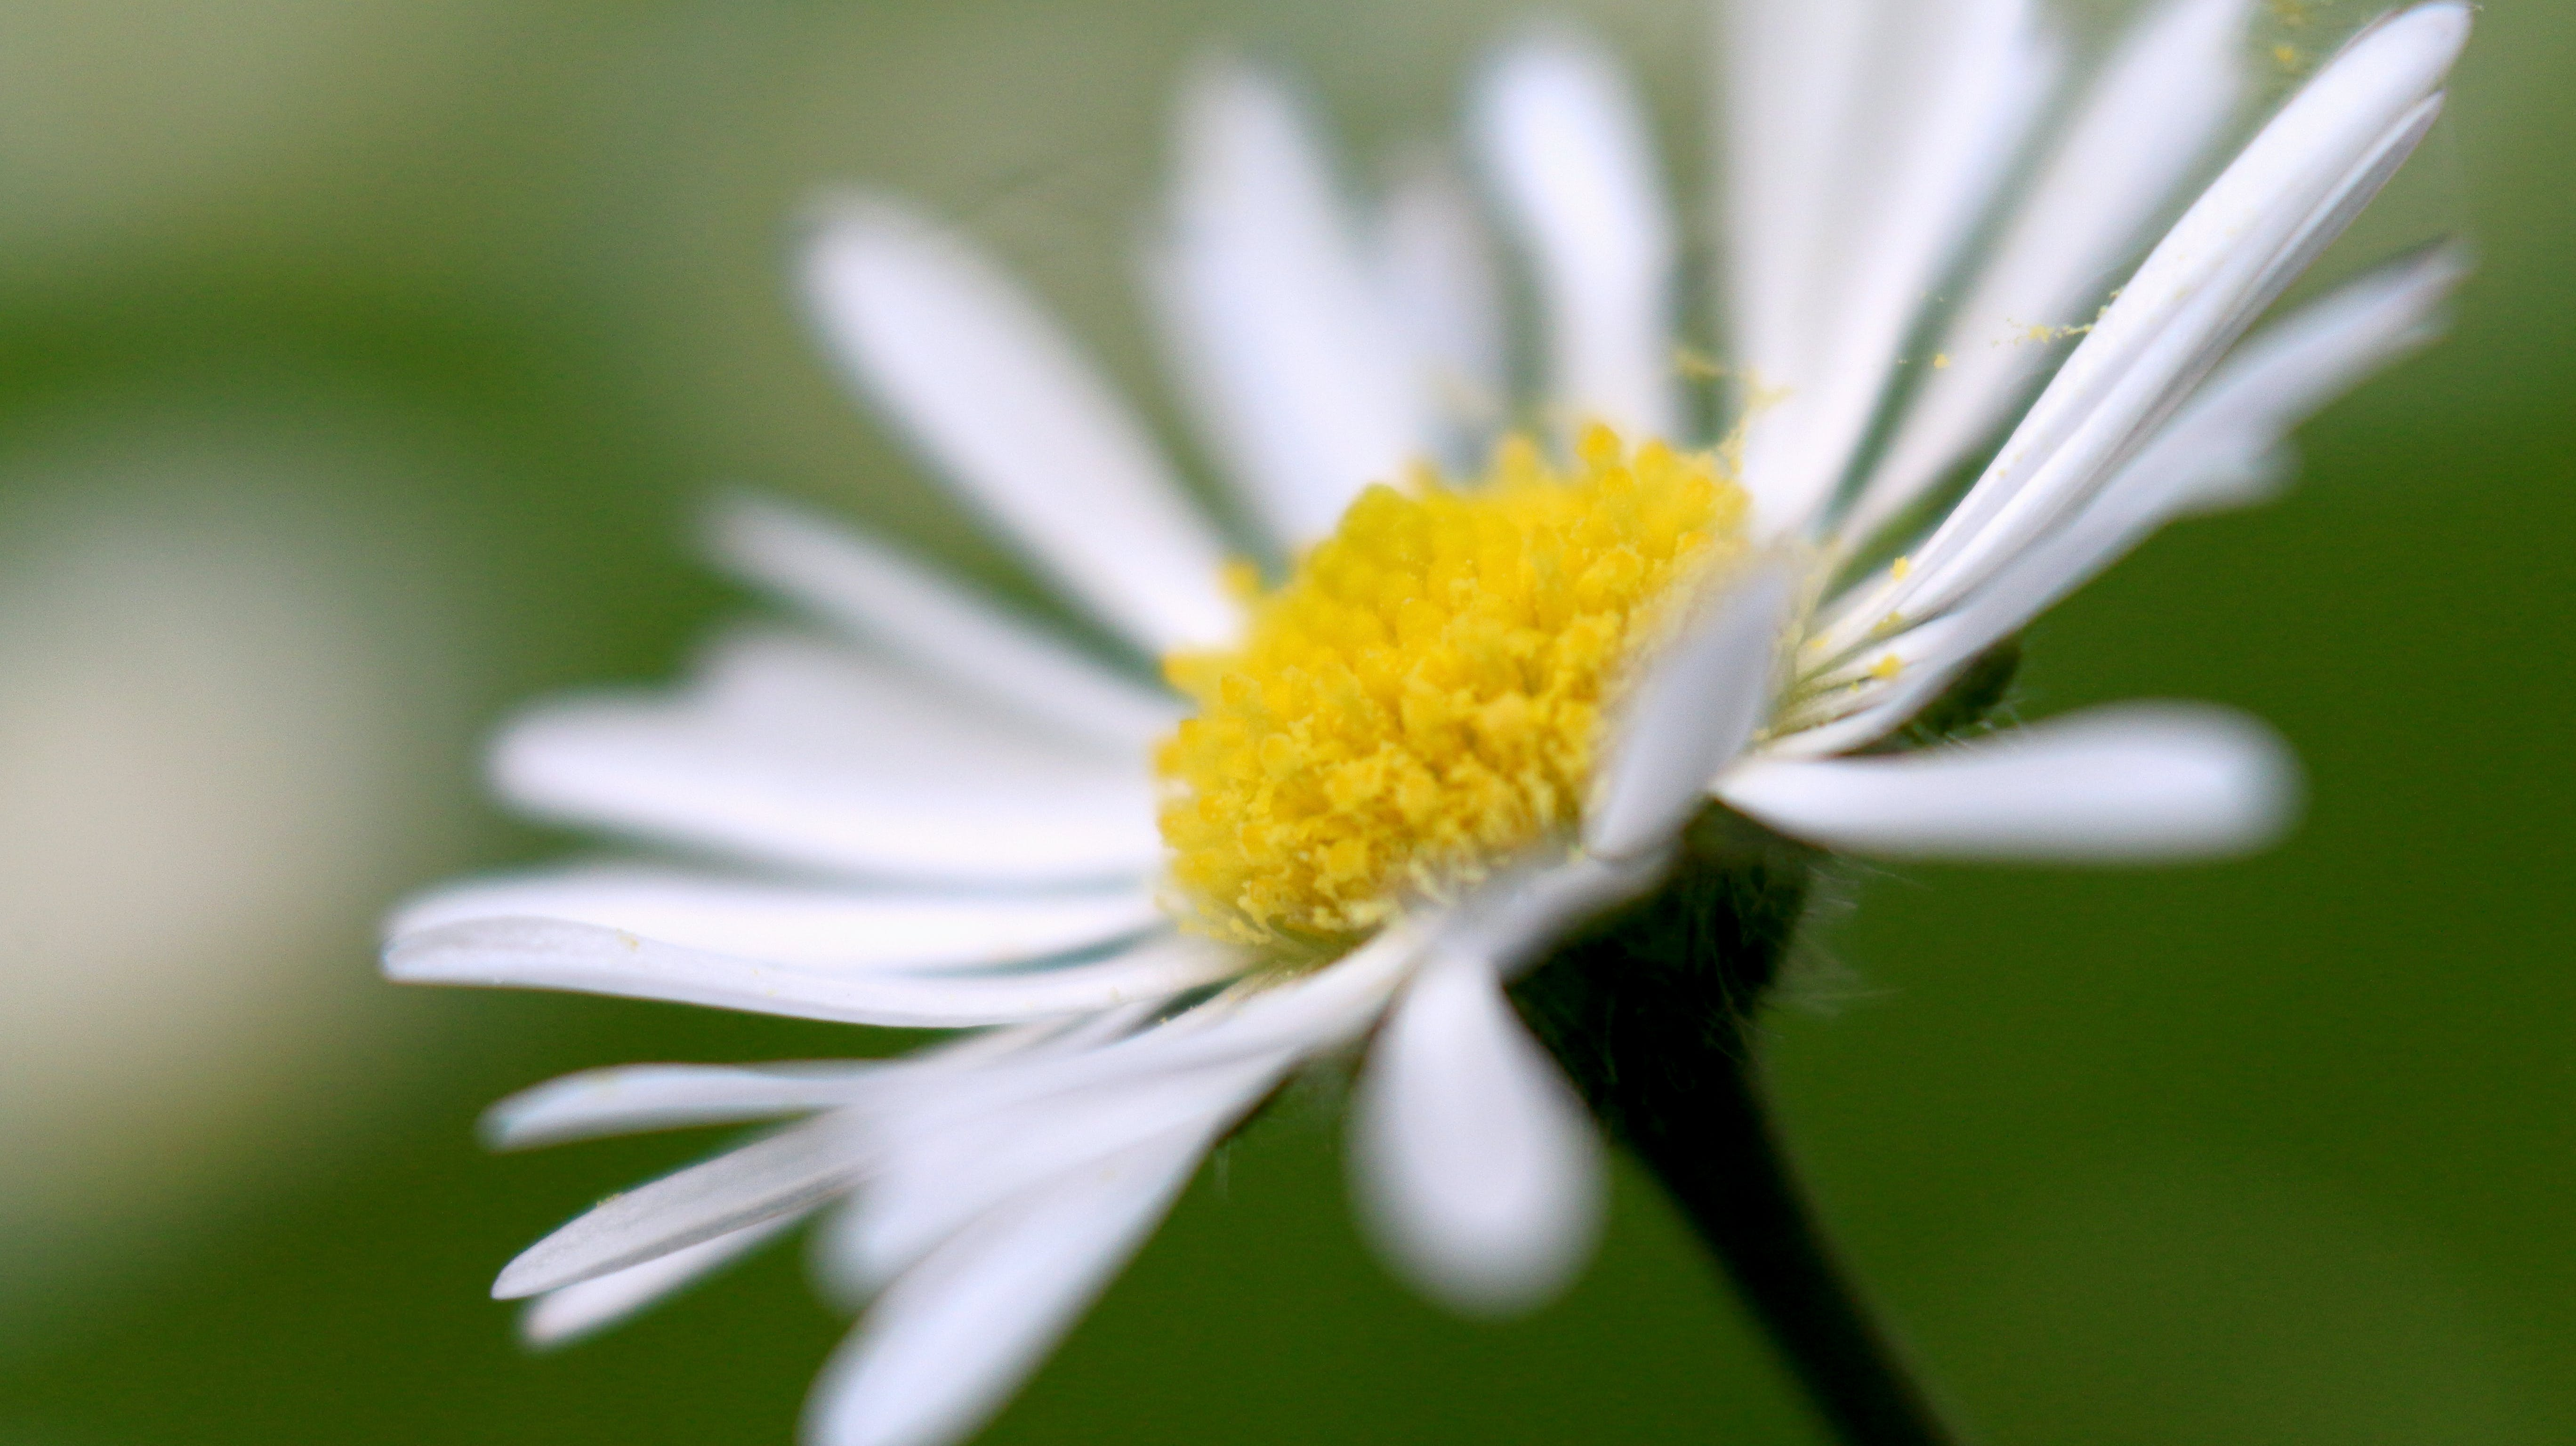 Selective Focus Photography of White Petaled Flower in Bloom